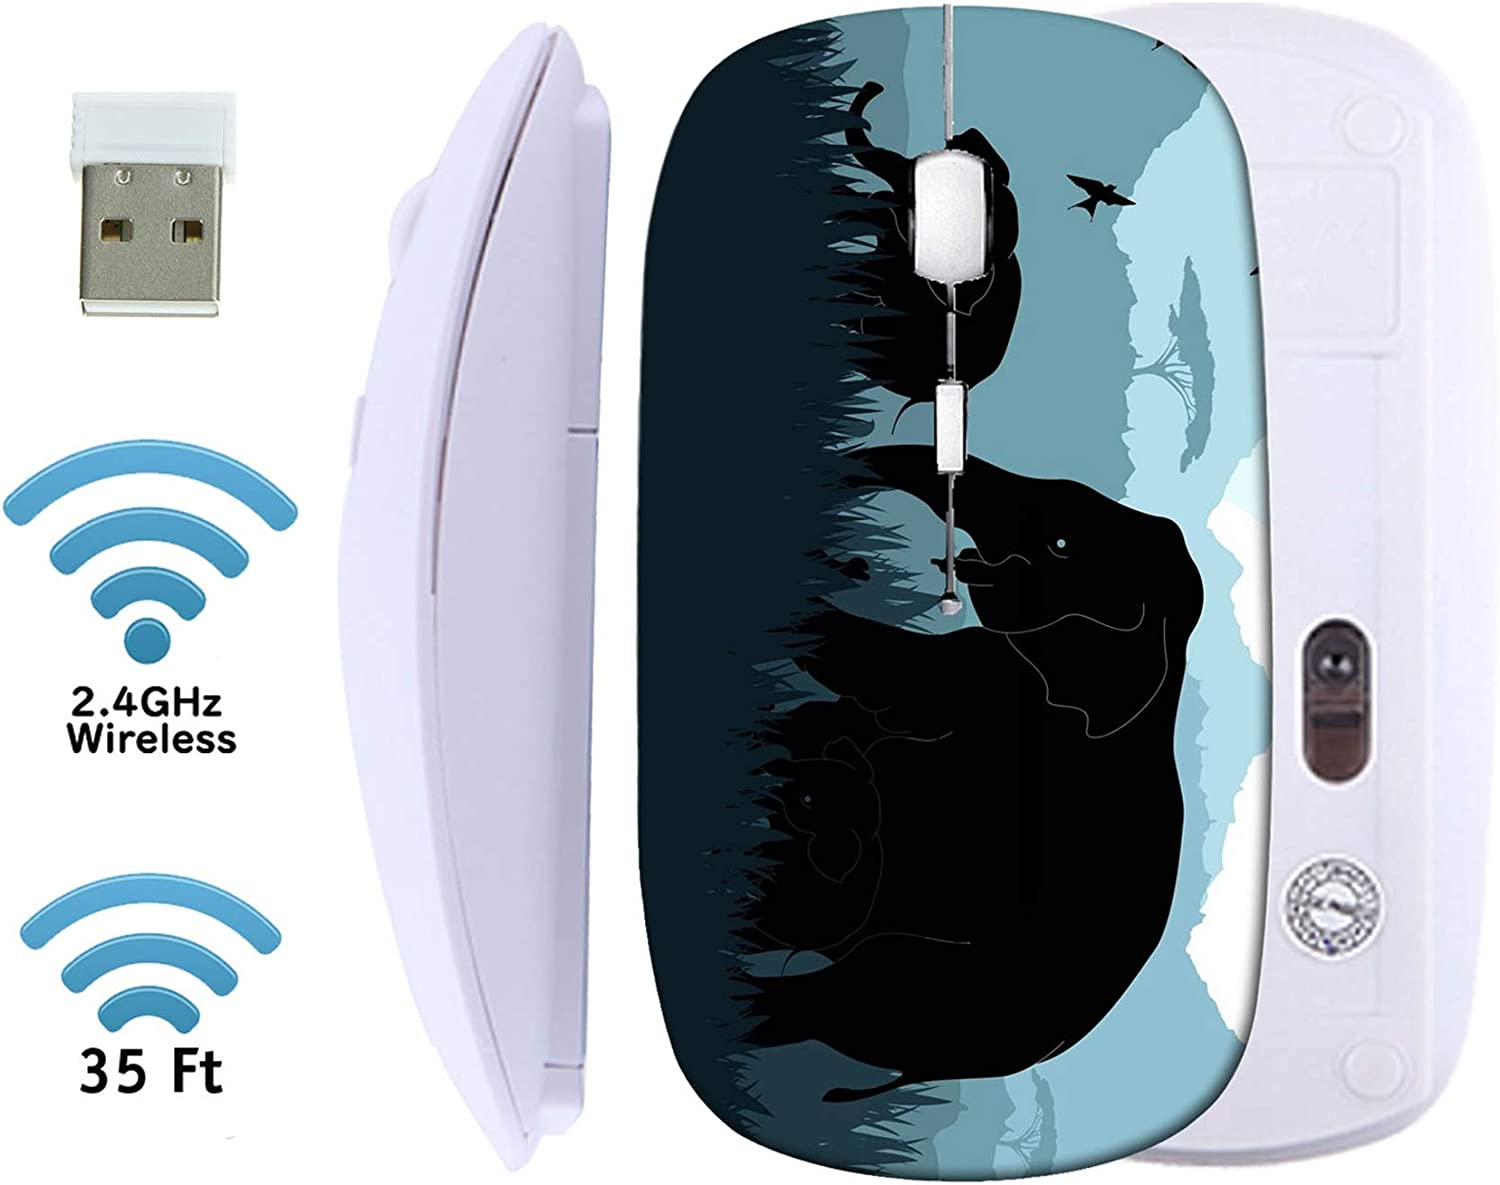 MSD Wireless Mouse 2.4G Black Base USB Financial sales sale Travel Receiver Mice with Tulsa Mall